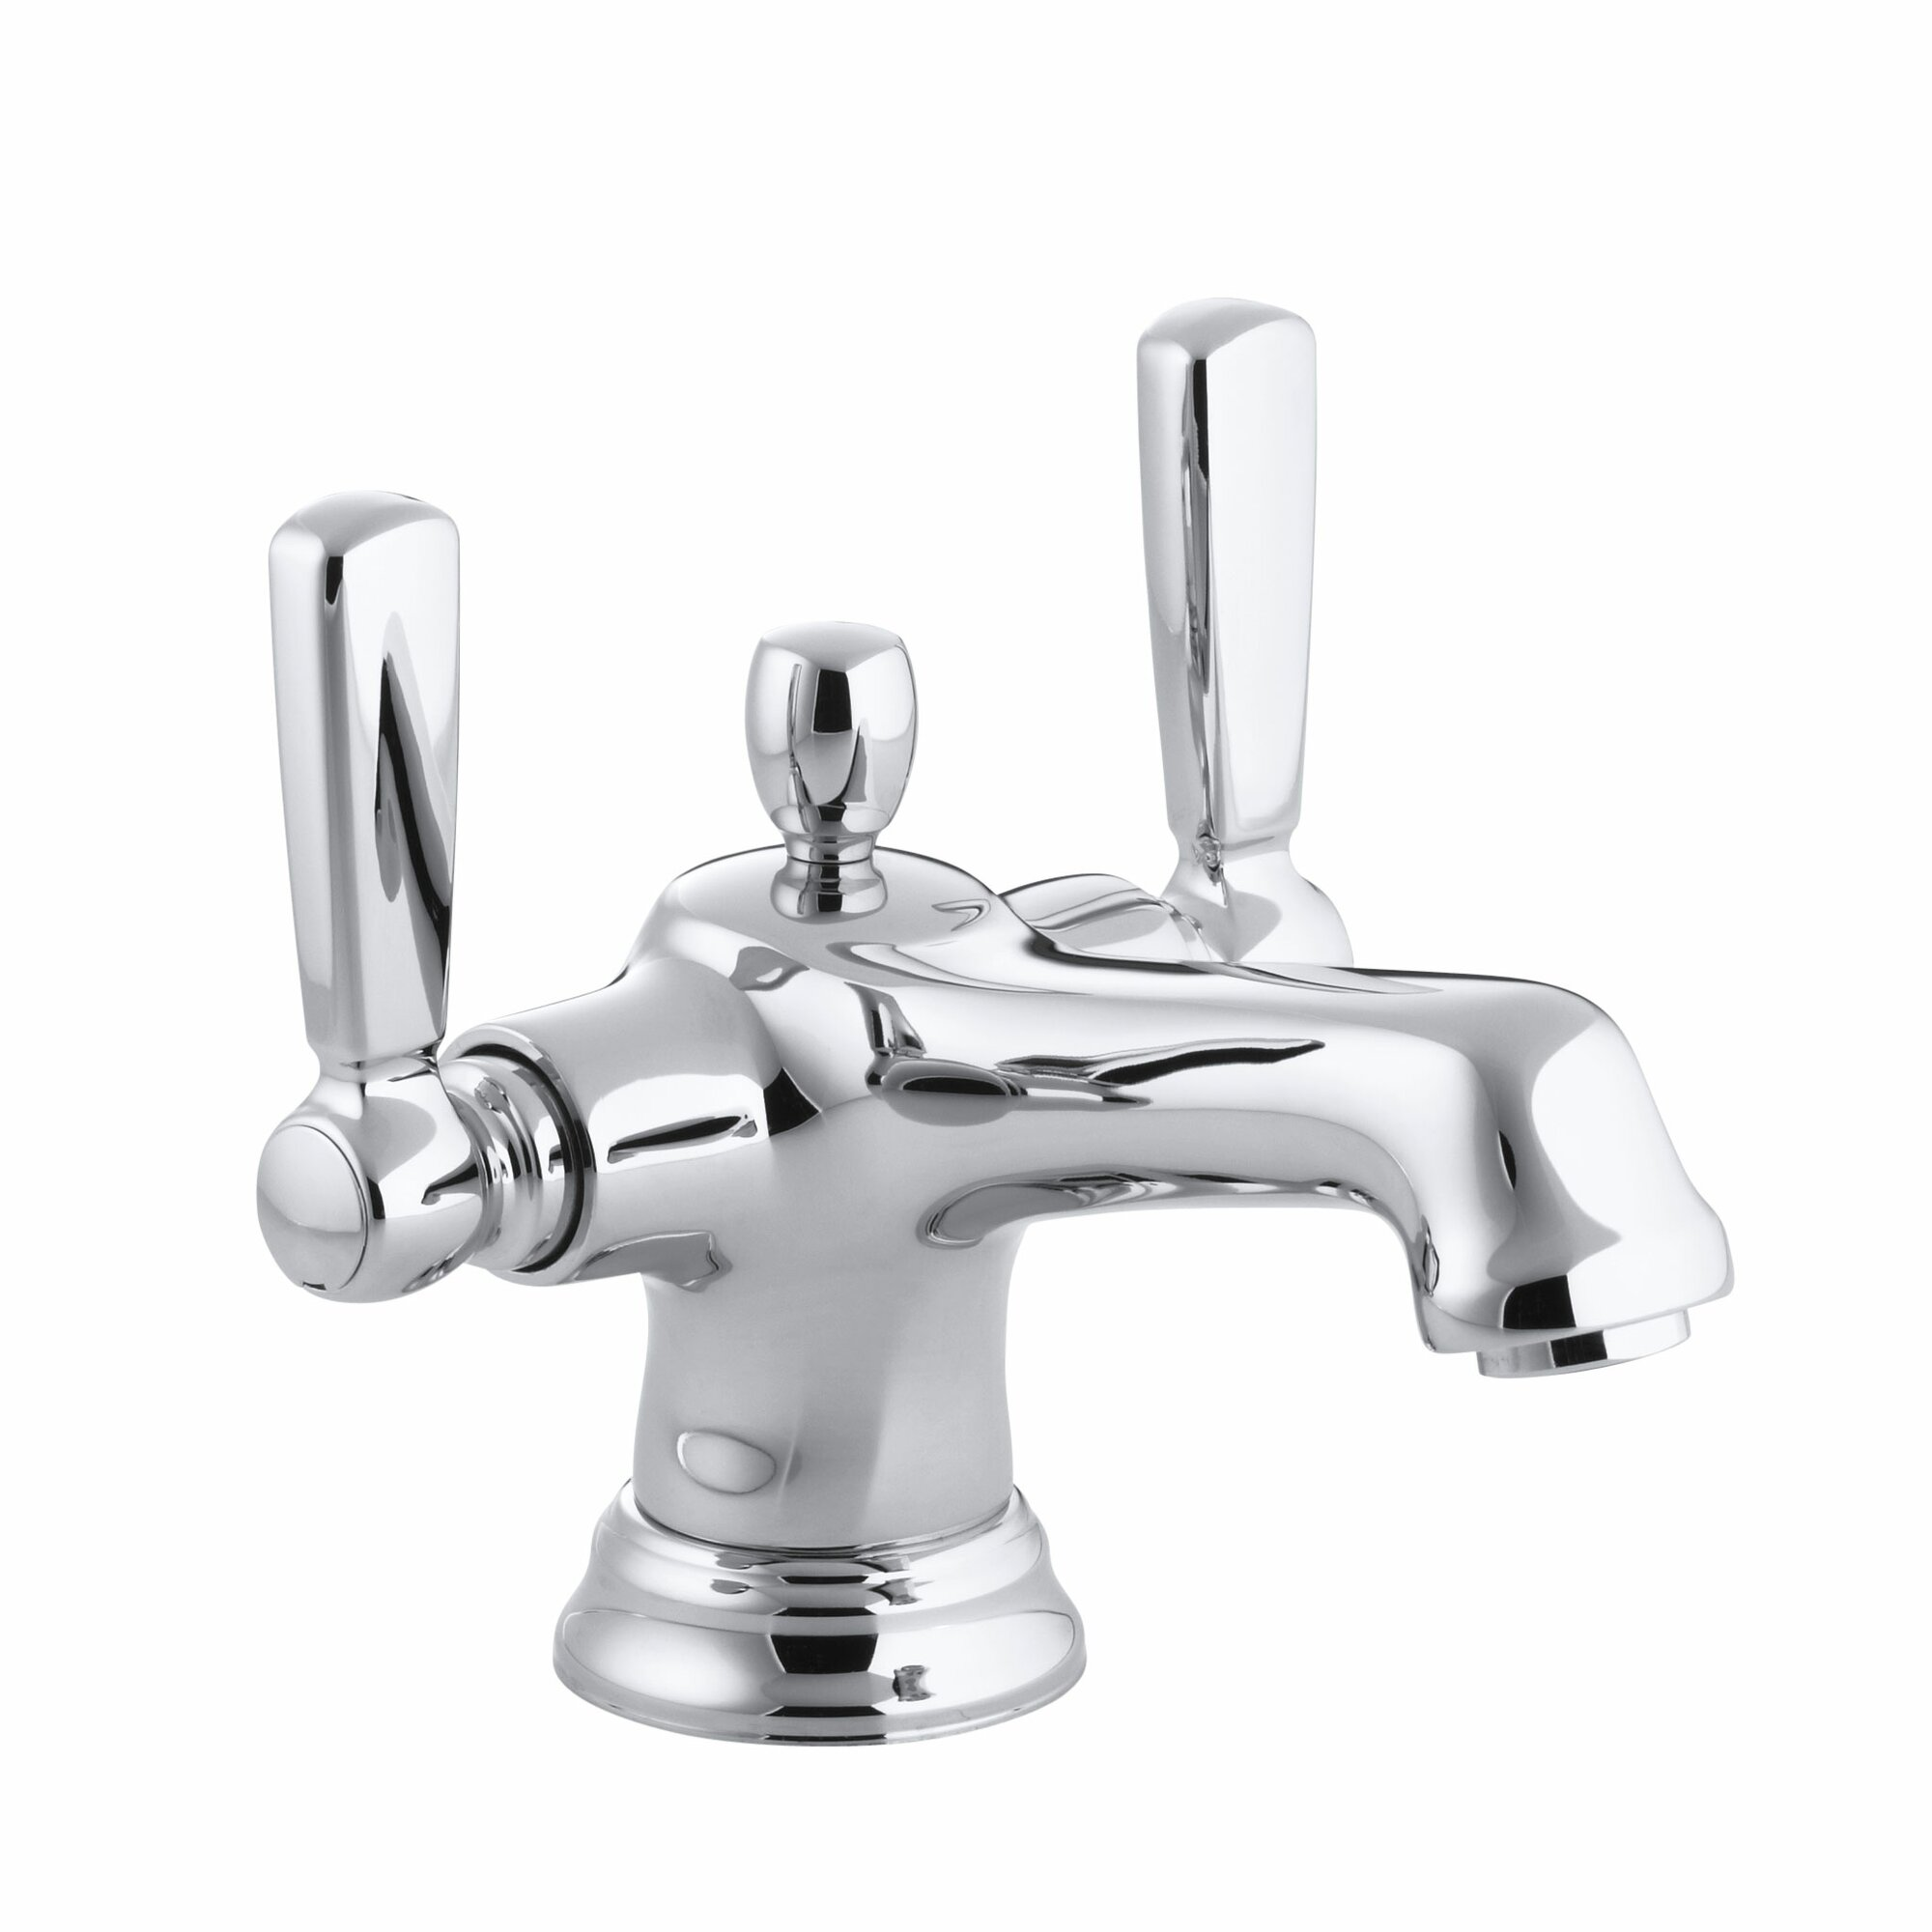 Bancroft Monoblock Single Hole Bathroom Sink Faucet With Escutcheon And Metal Lever Handles